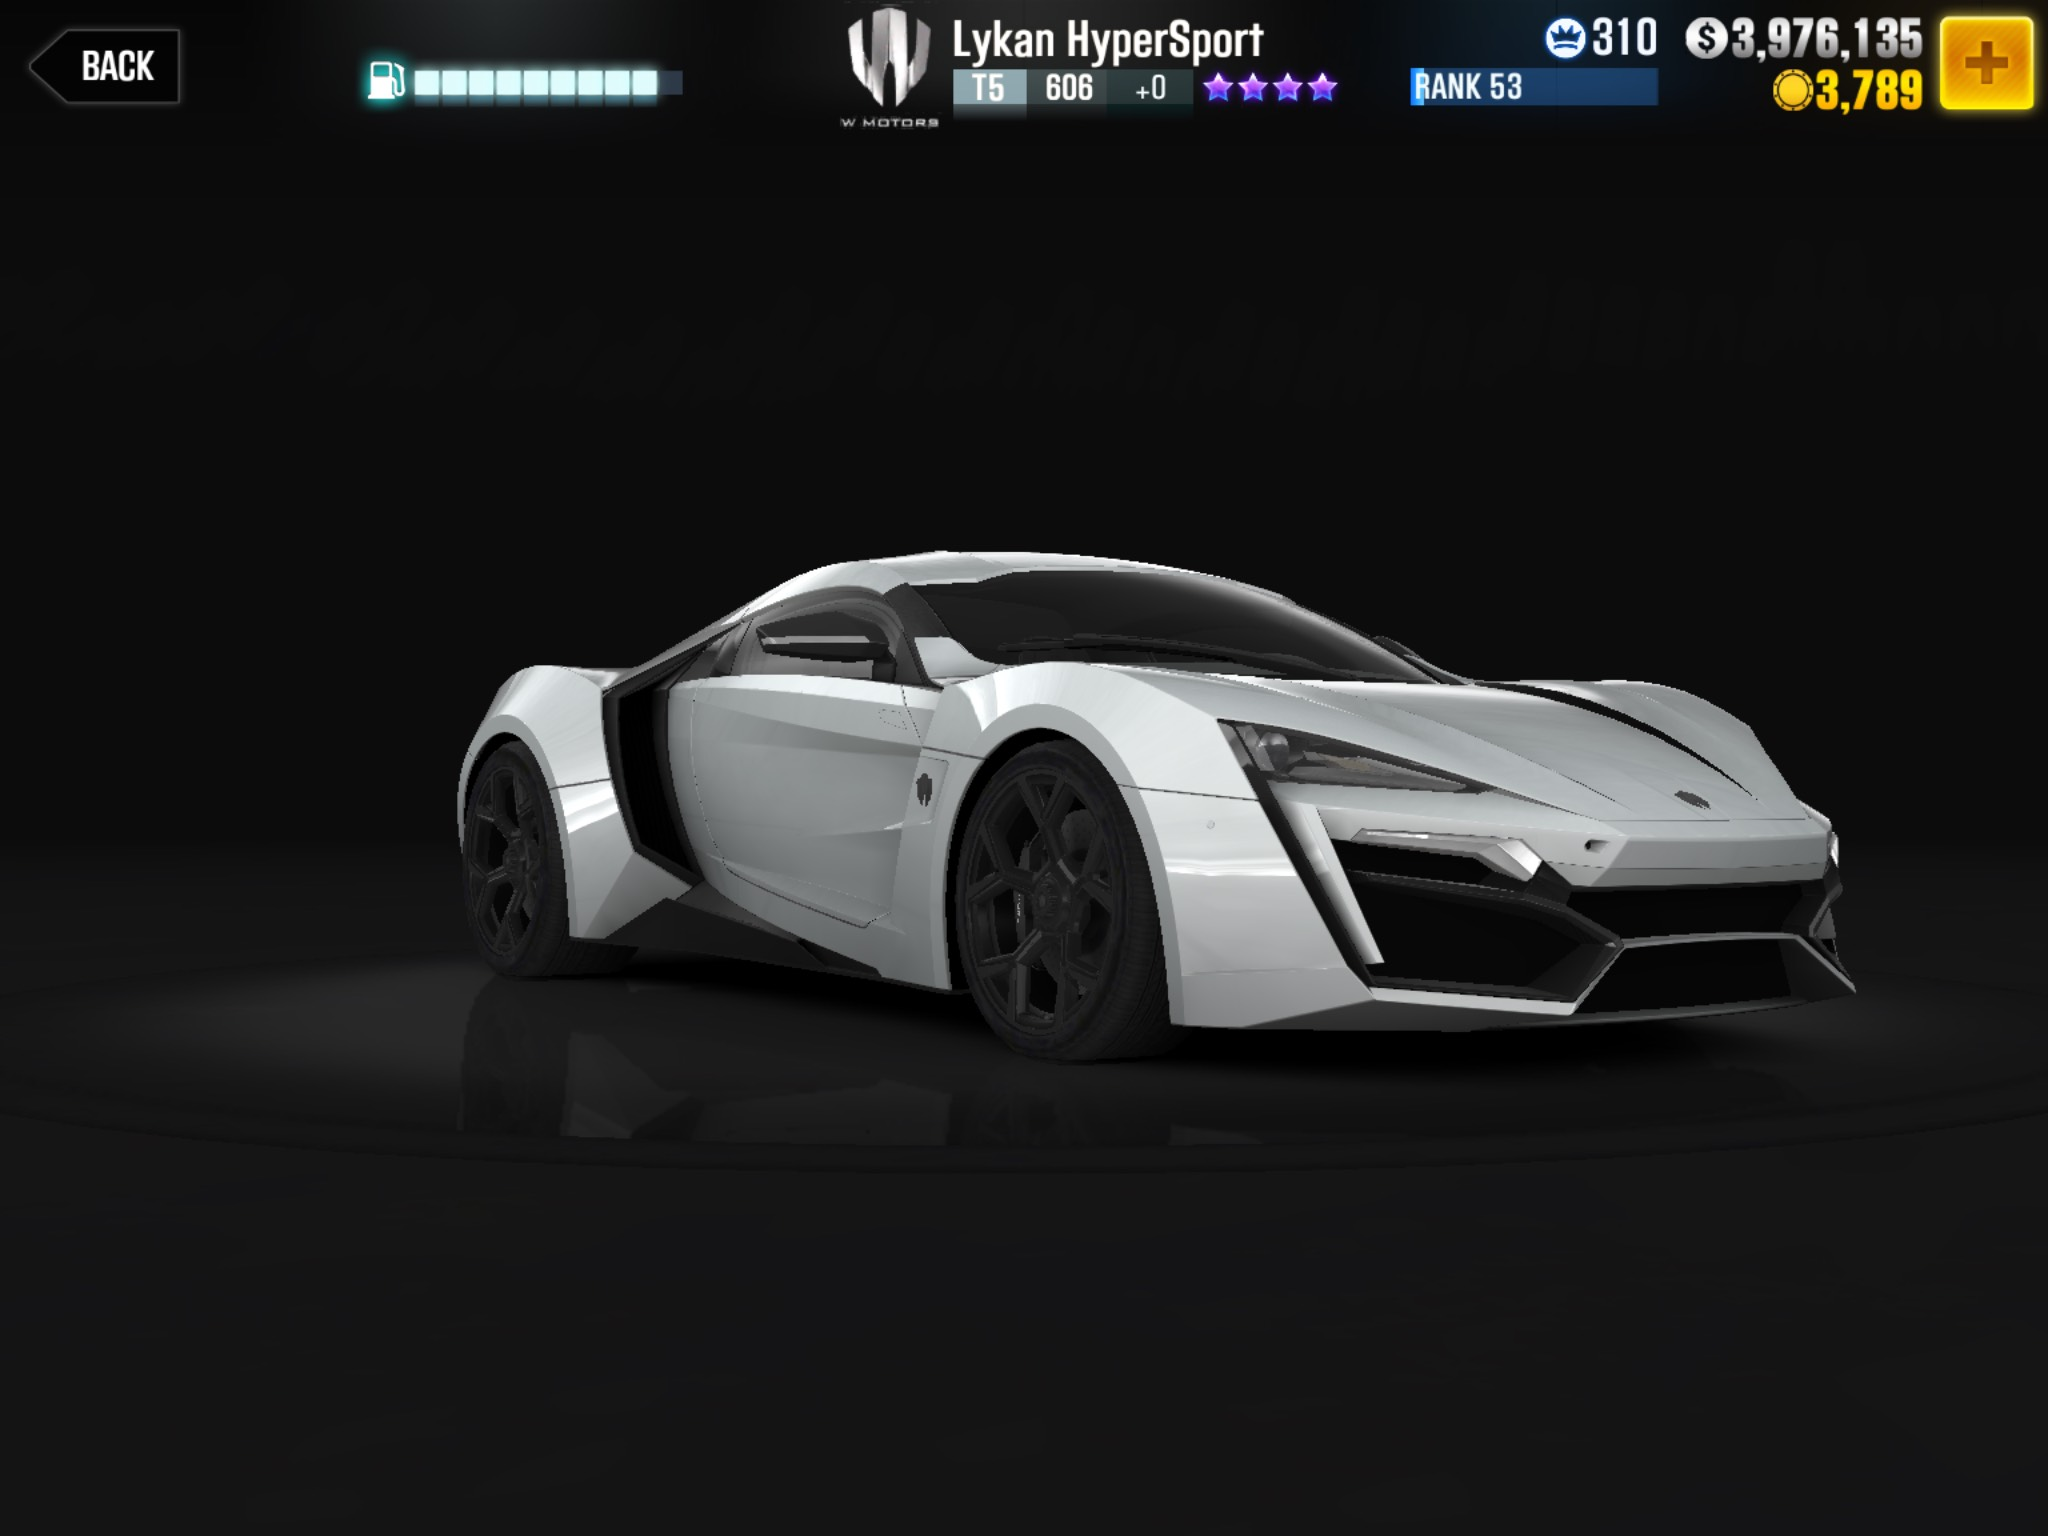 CSR2 About time the Lykan Hypersport made an appearance!